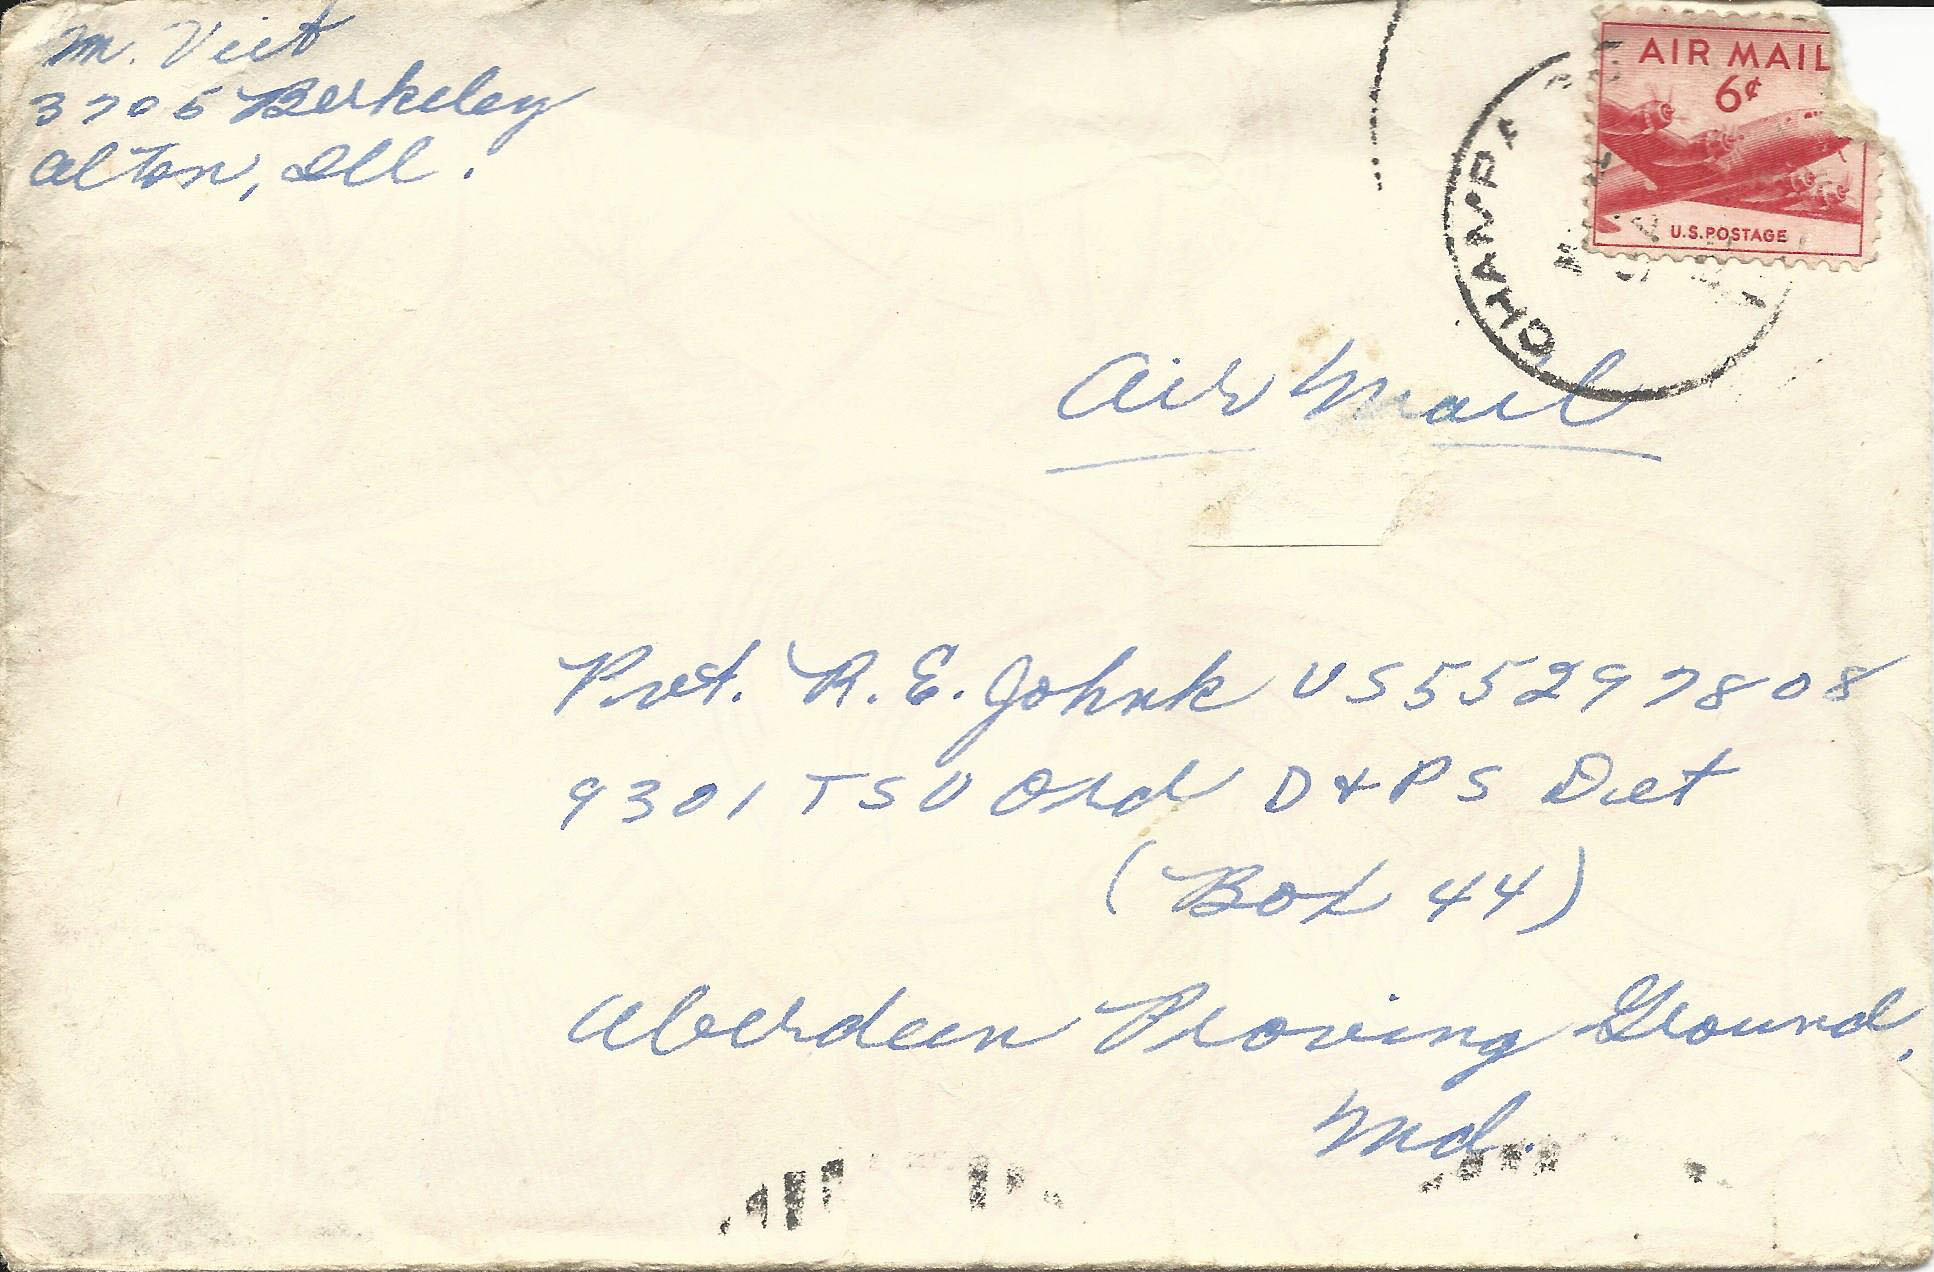 Mar. 3, 1953 (Marj) Envelope